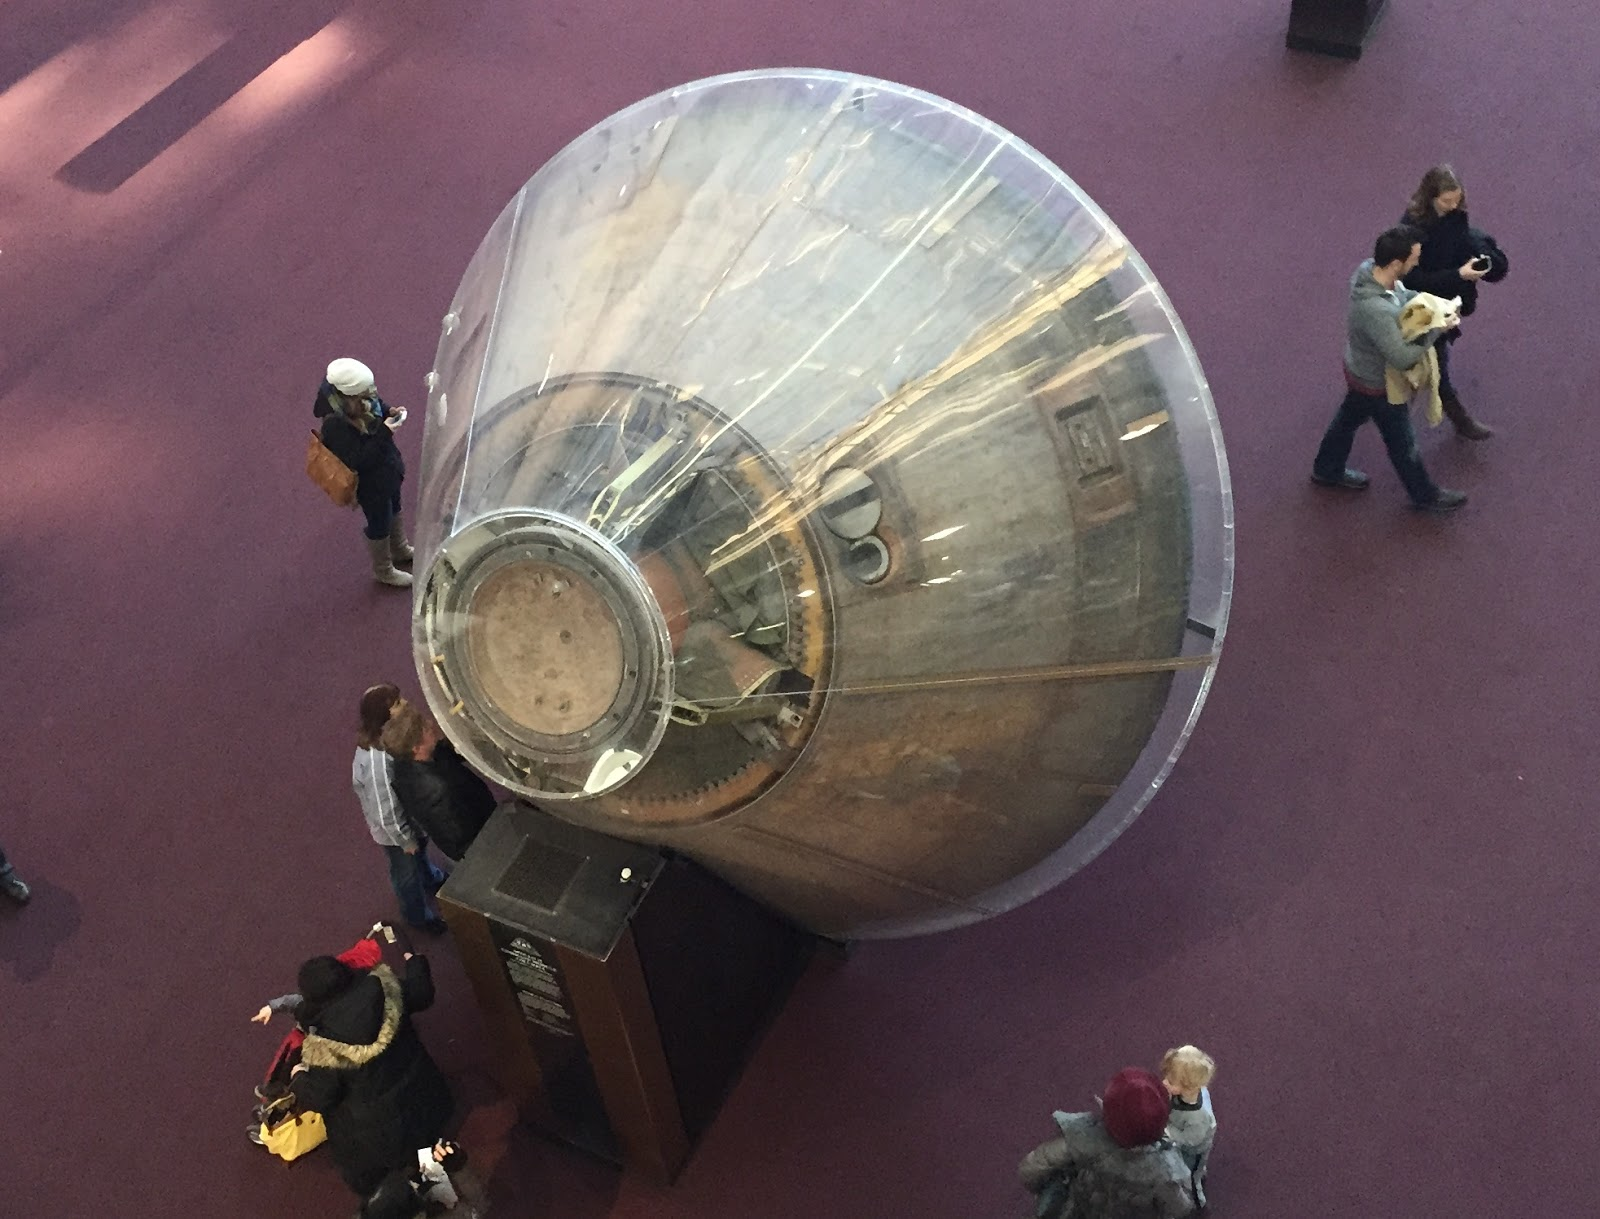 apollo 11 capsule from above